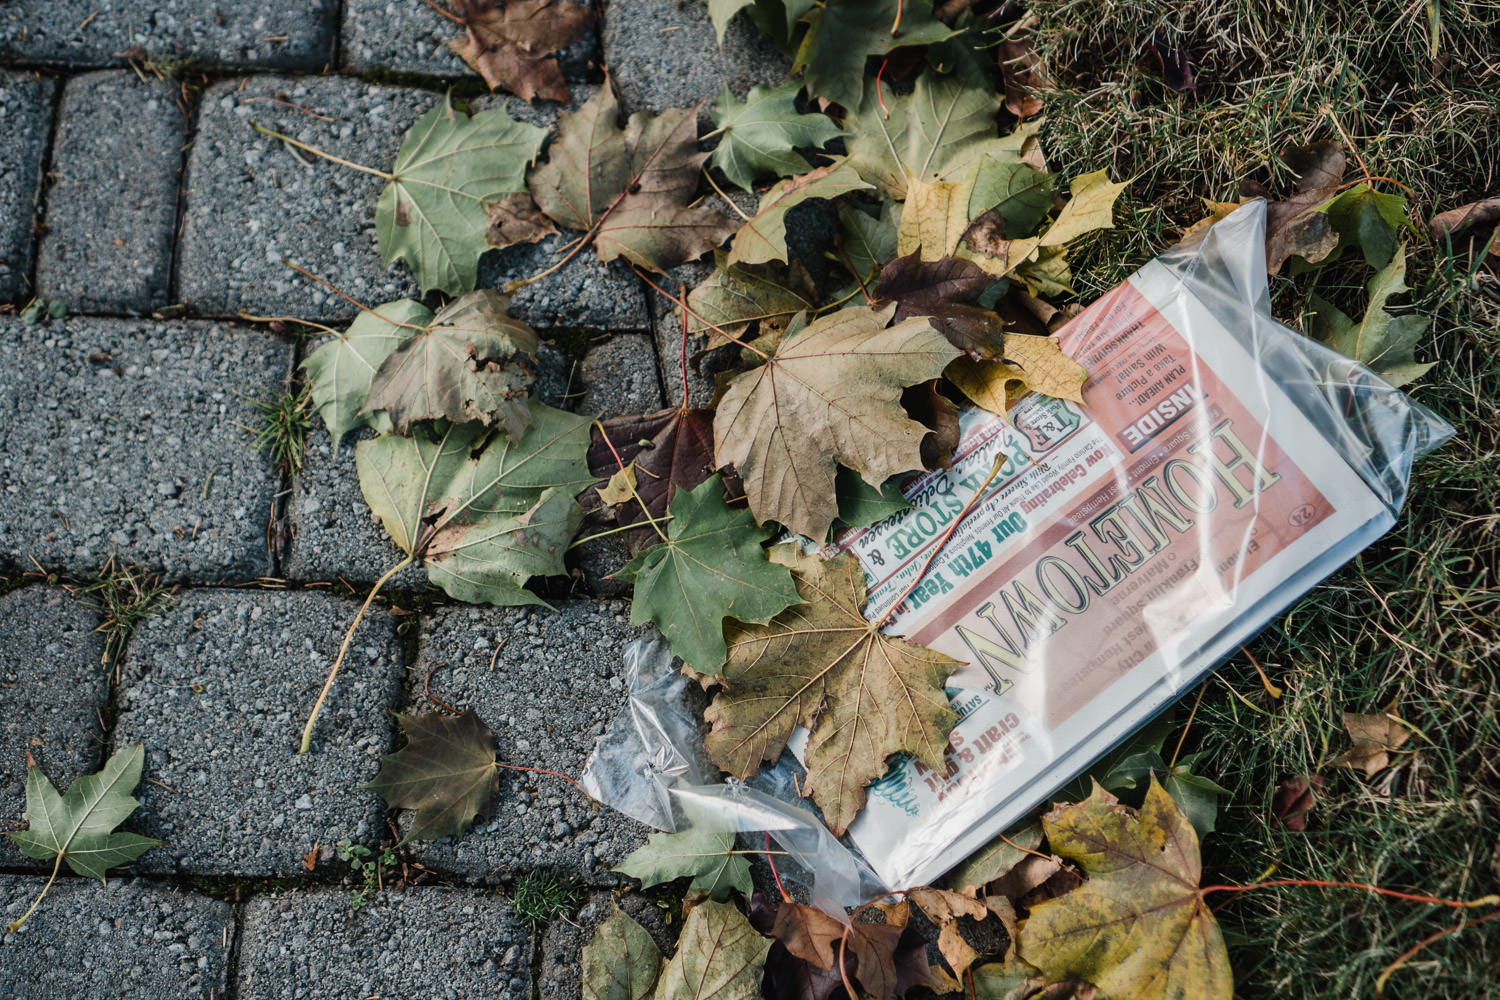 Newspaper covered with leaves.